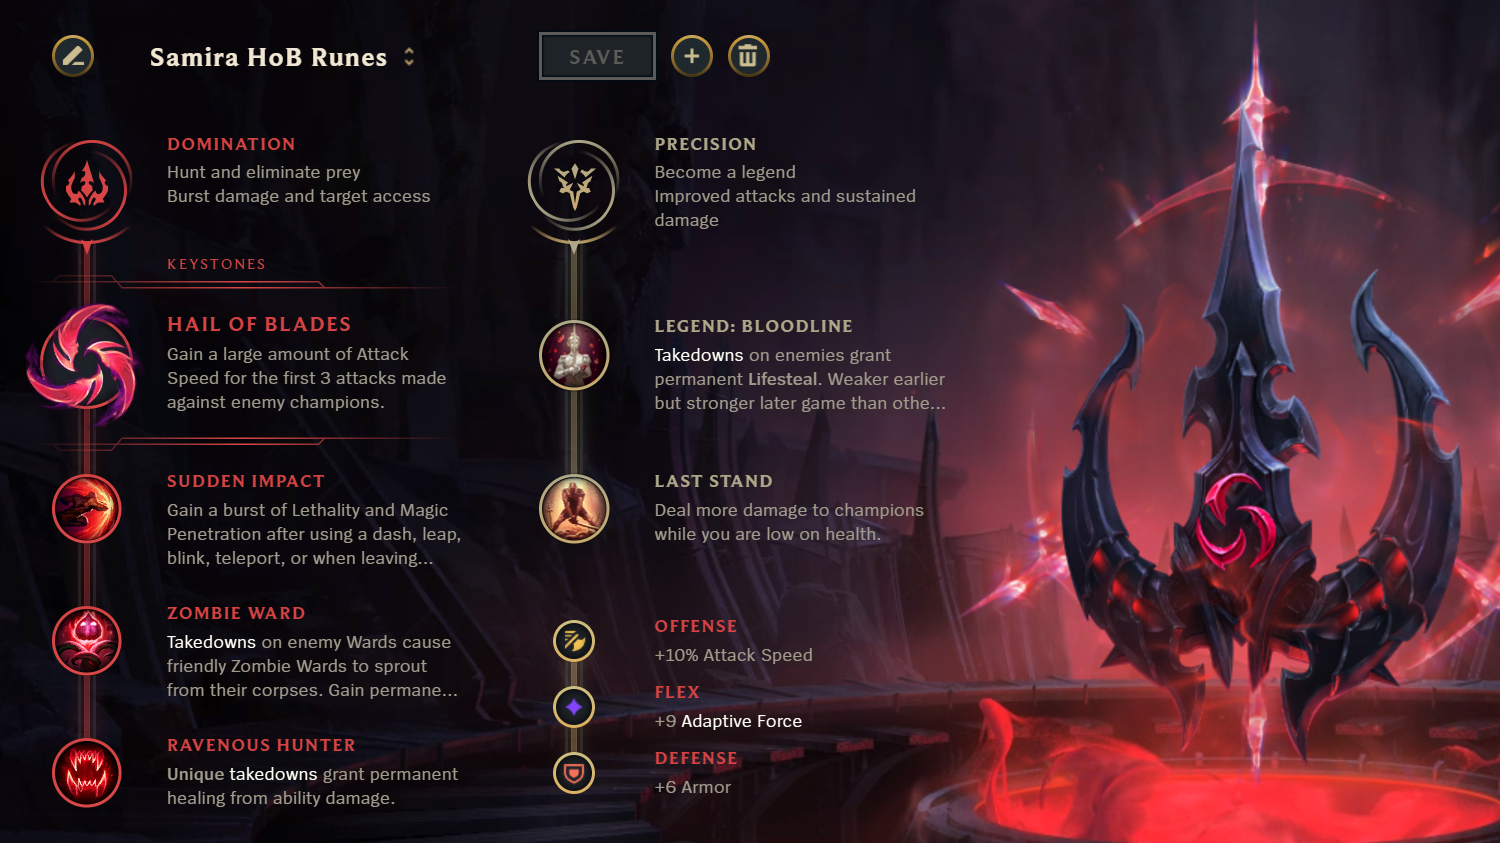 Hail of Blades rune page for Samira in LoL